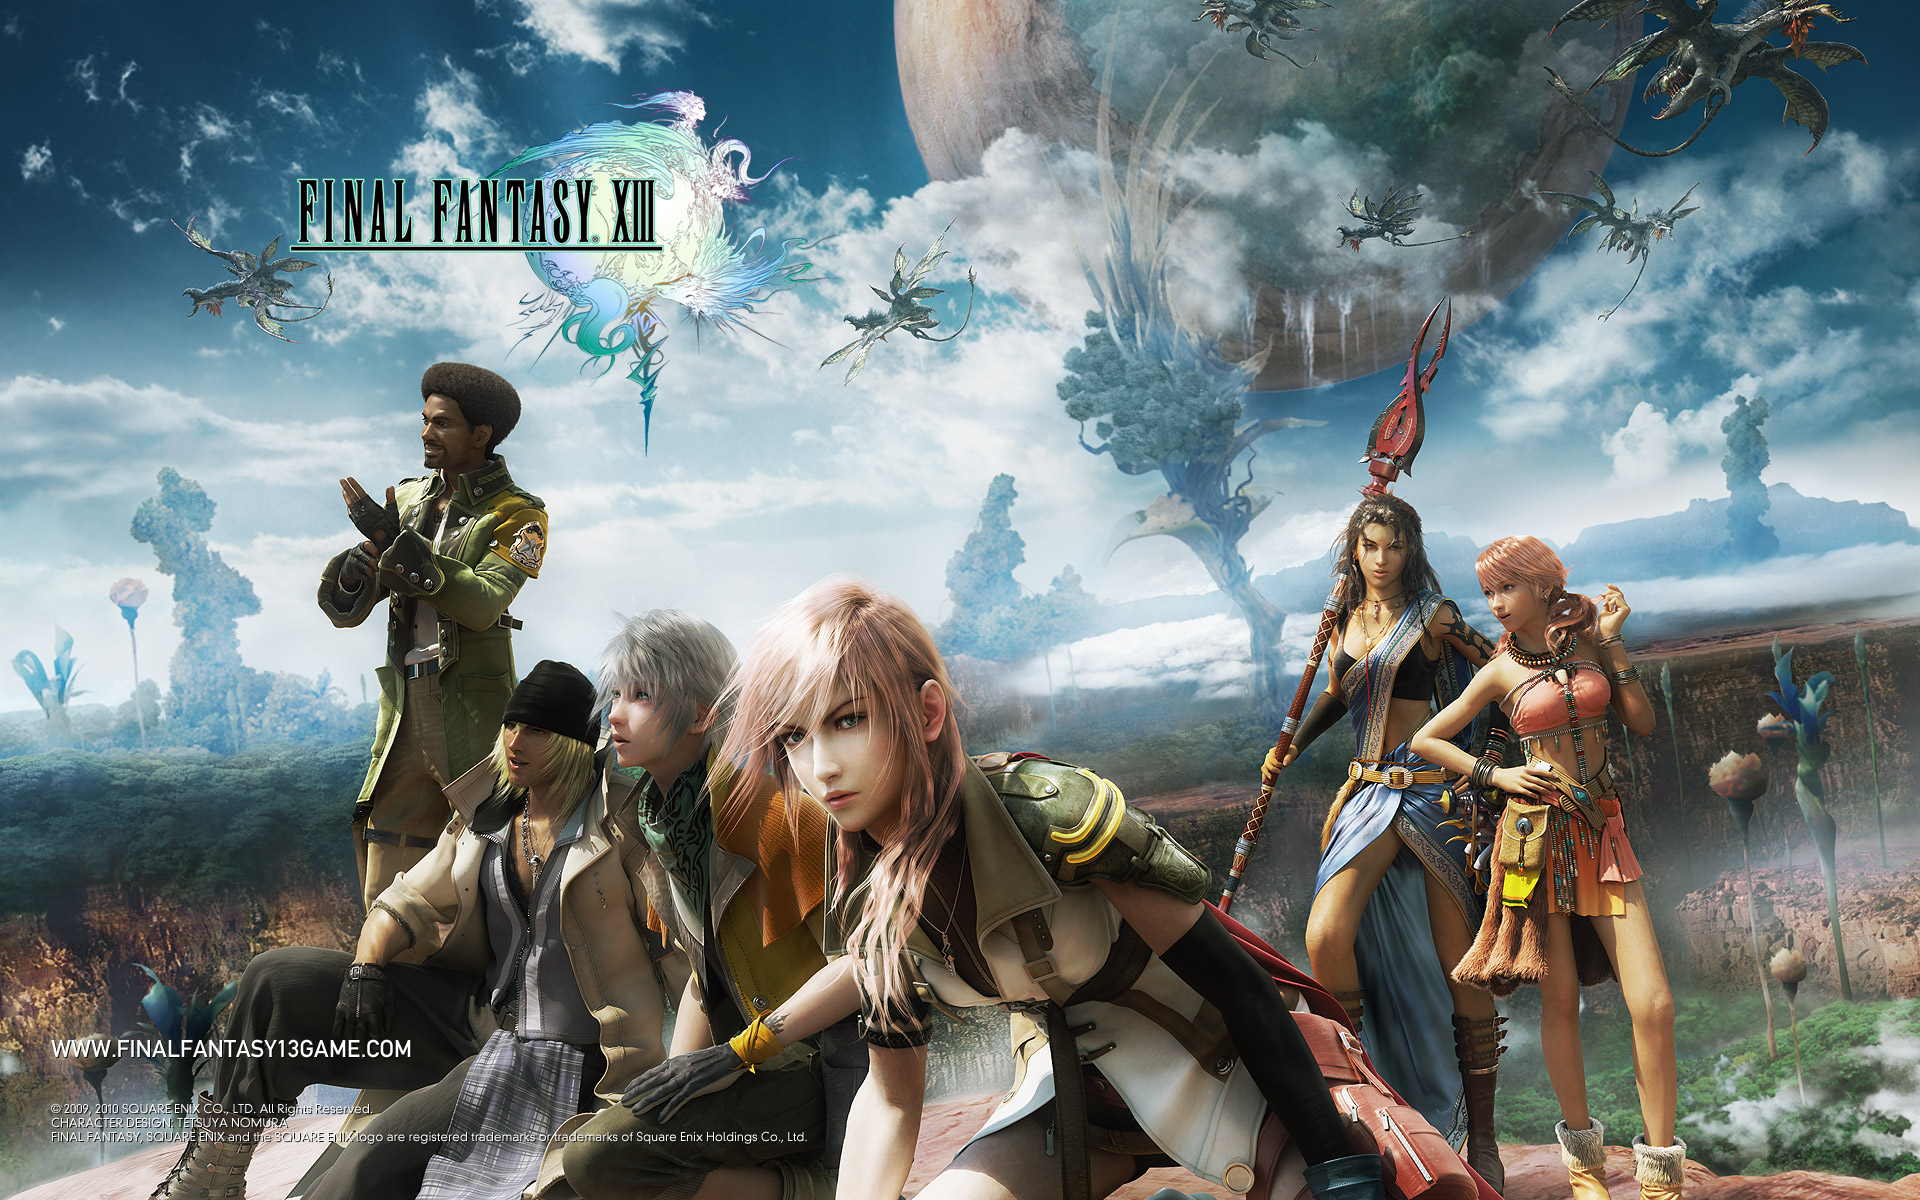 Final Fantasy 13 Wallpaper Full HD 1080p Wallpaper HD Widescreen 1920x1200